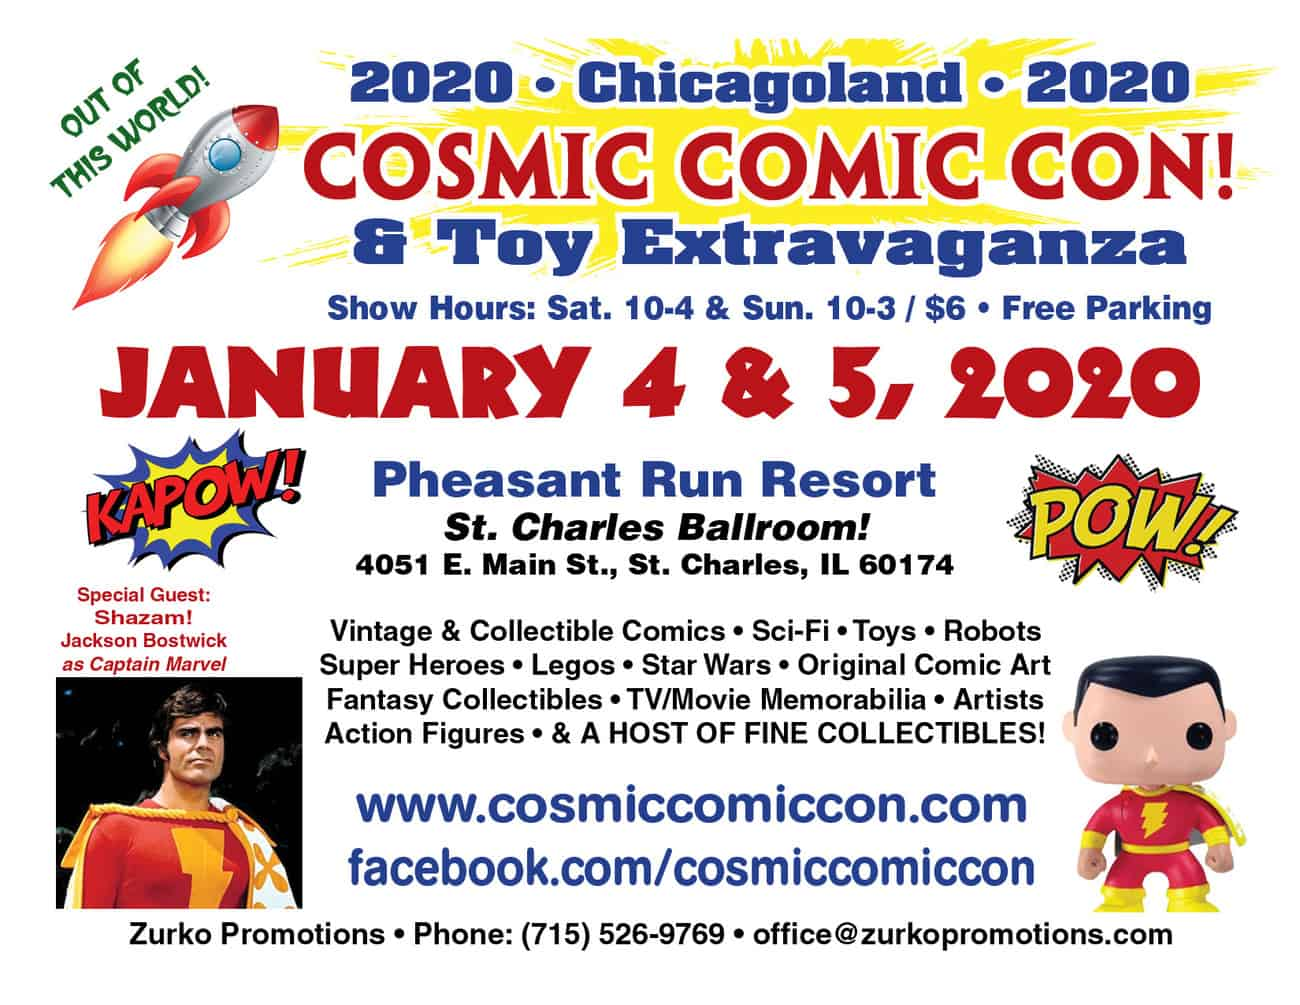 New Jersey Comic Con 2020 Cosmic Comic Con (January 2020) | Convention Scene